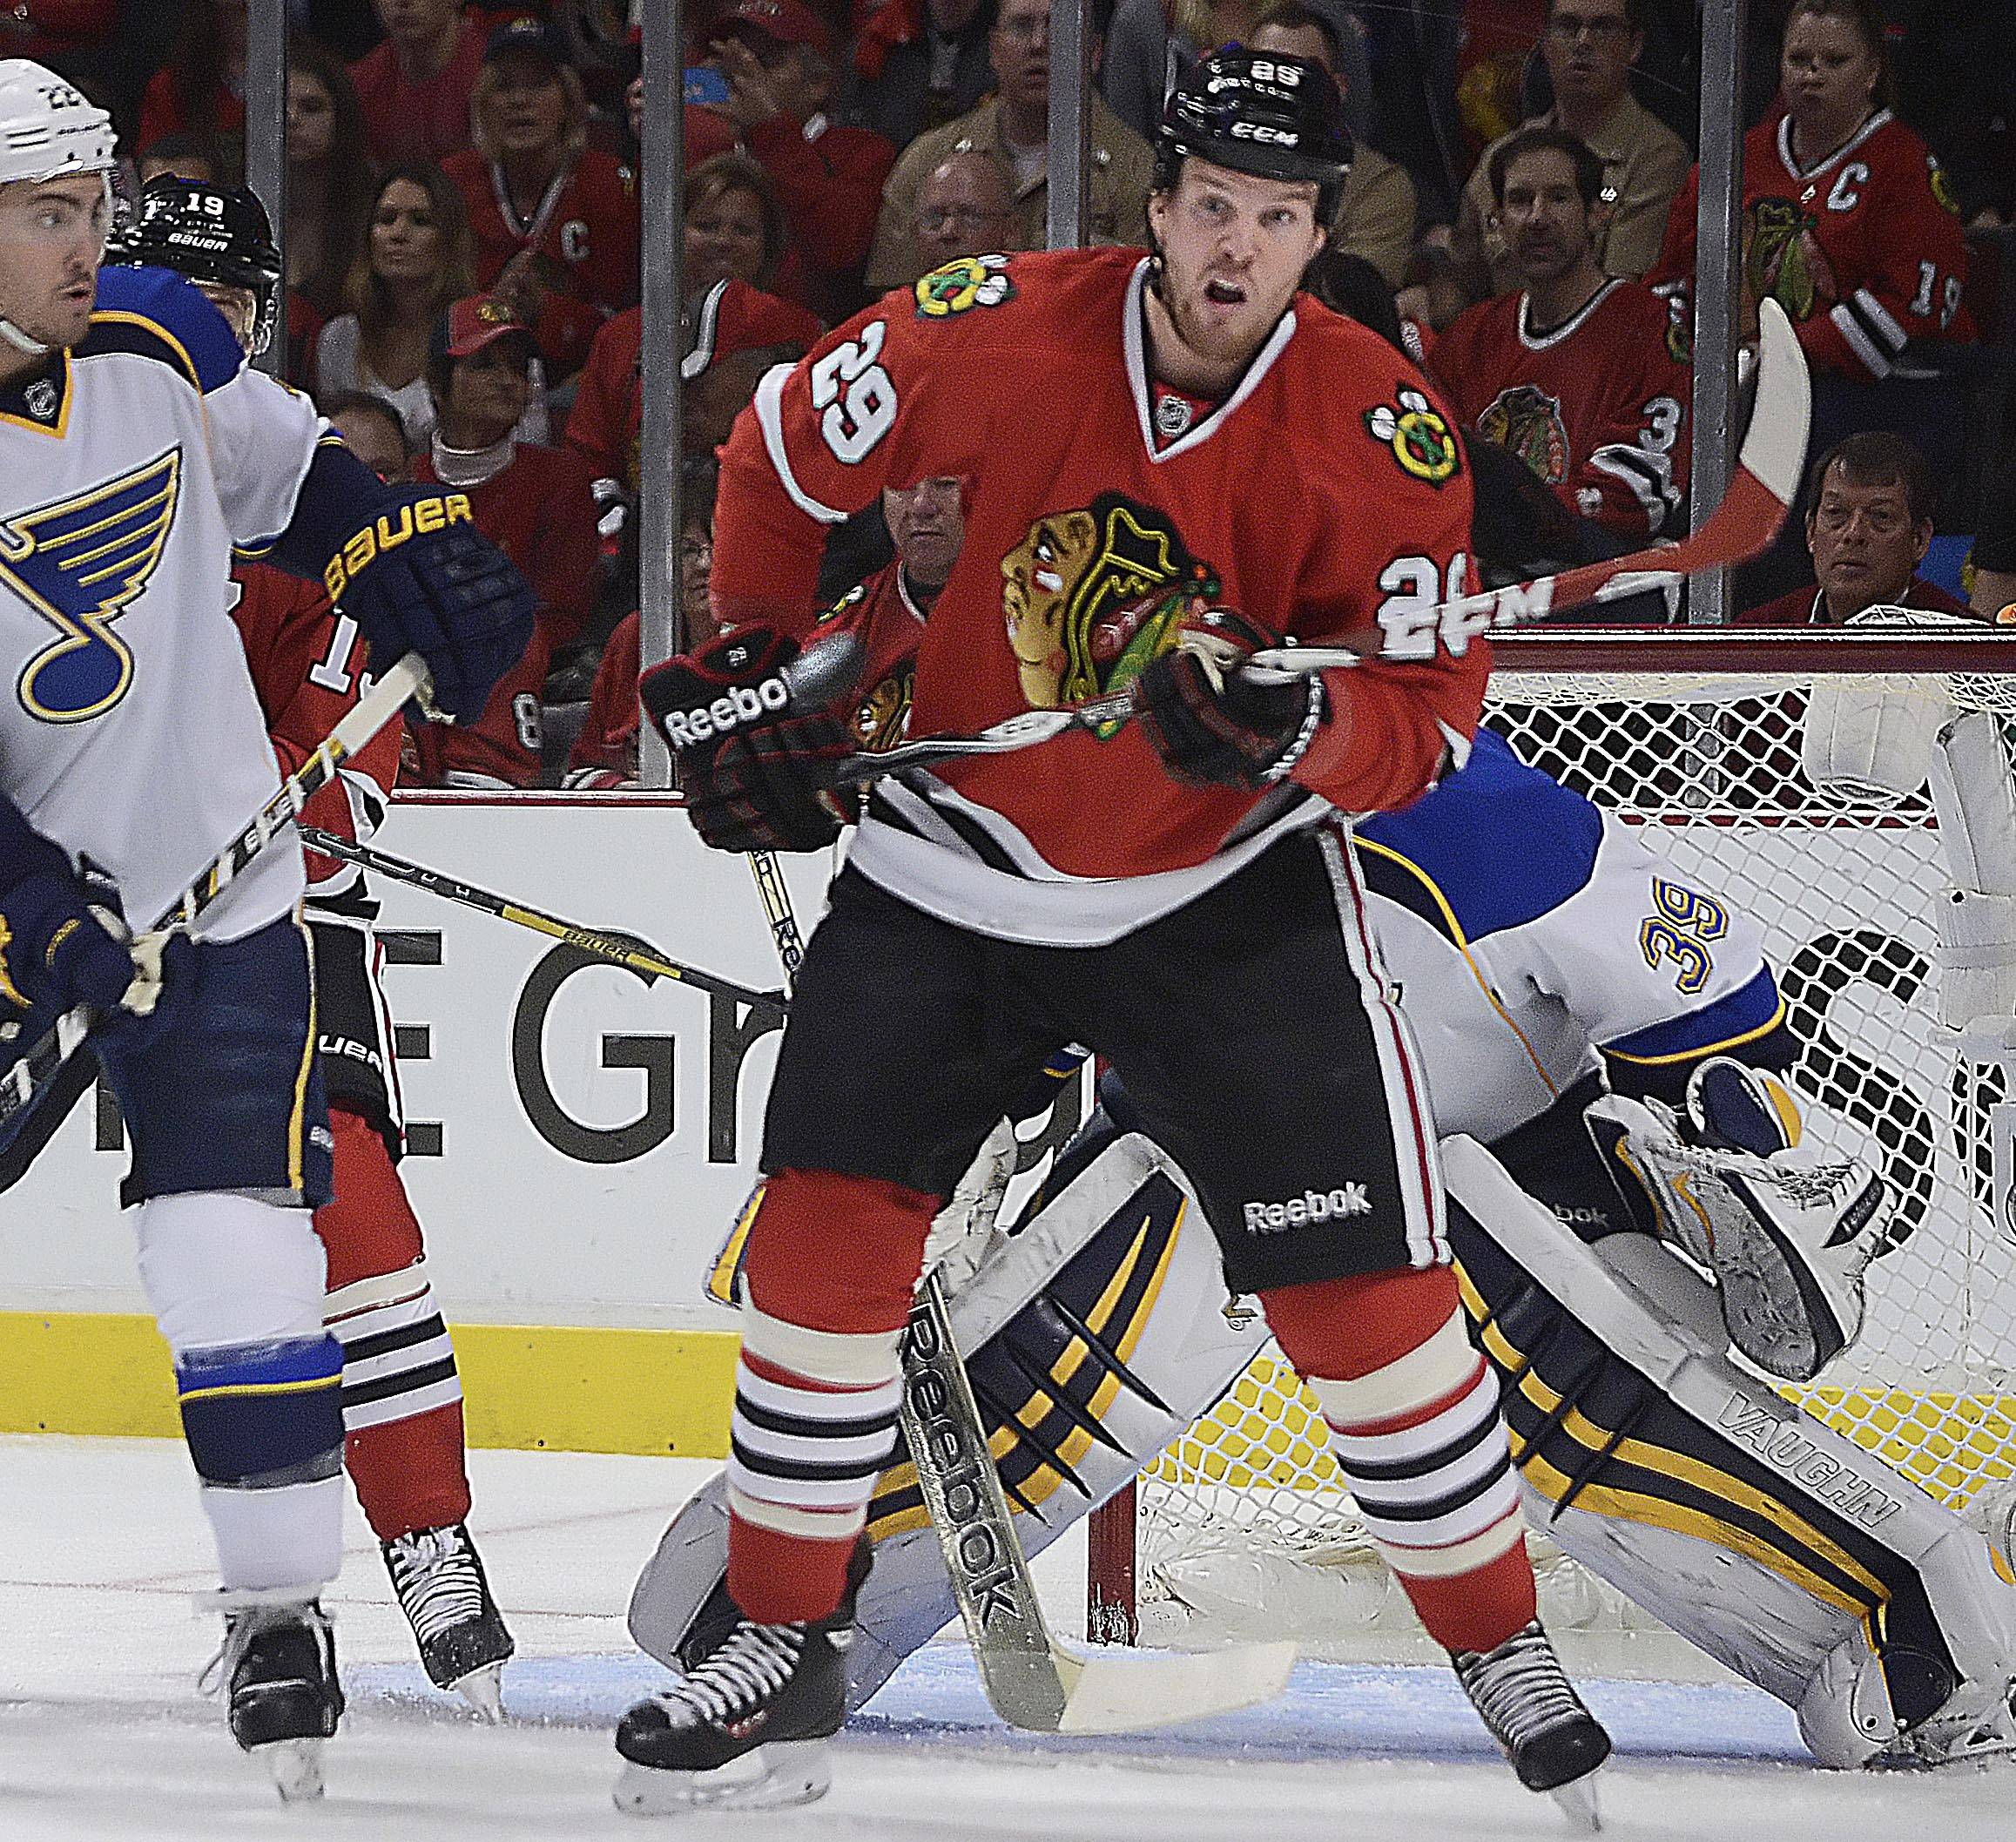 Chicago Blackhawks left wing Bryan Bickell lifts his stick to deflect the puck (near his right glove) into the net against the St. Louis Blues in the first period Sunday in Game 6 of the NHL first round playoffs at the United Center in Chicago.